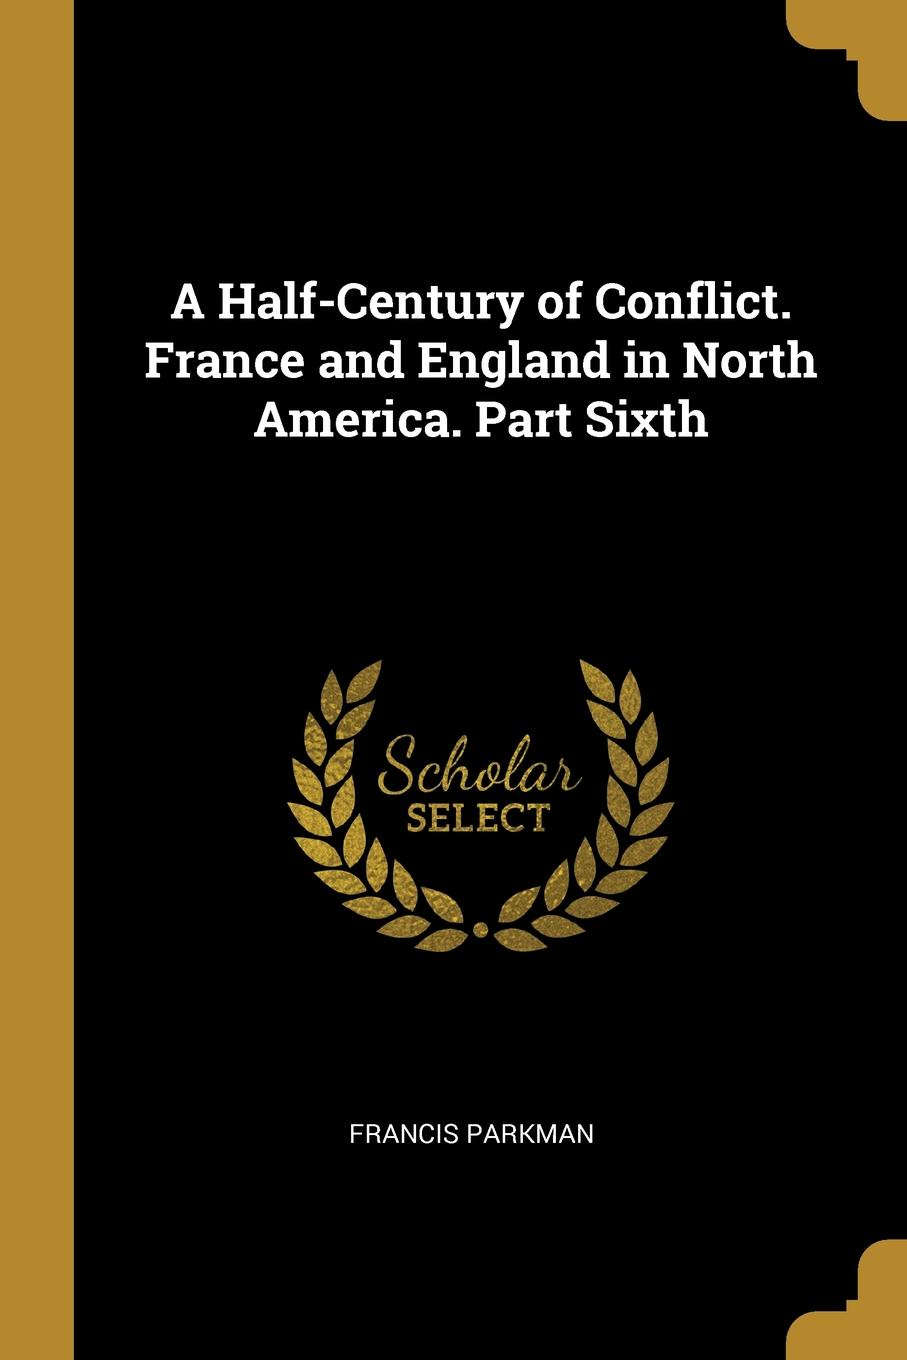 Francis Parkman A Half-Century of Conflict. France and England in North America. Part Sixth